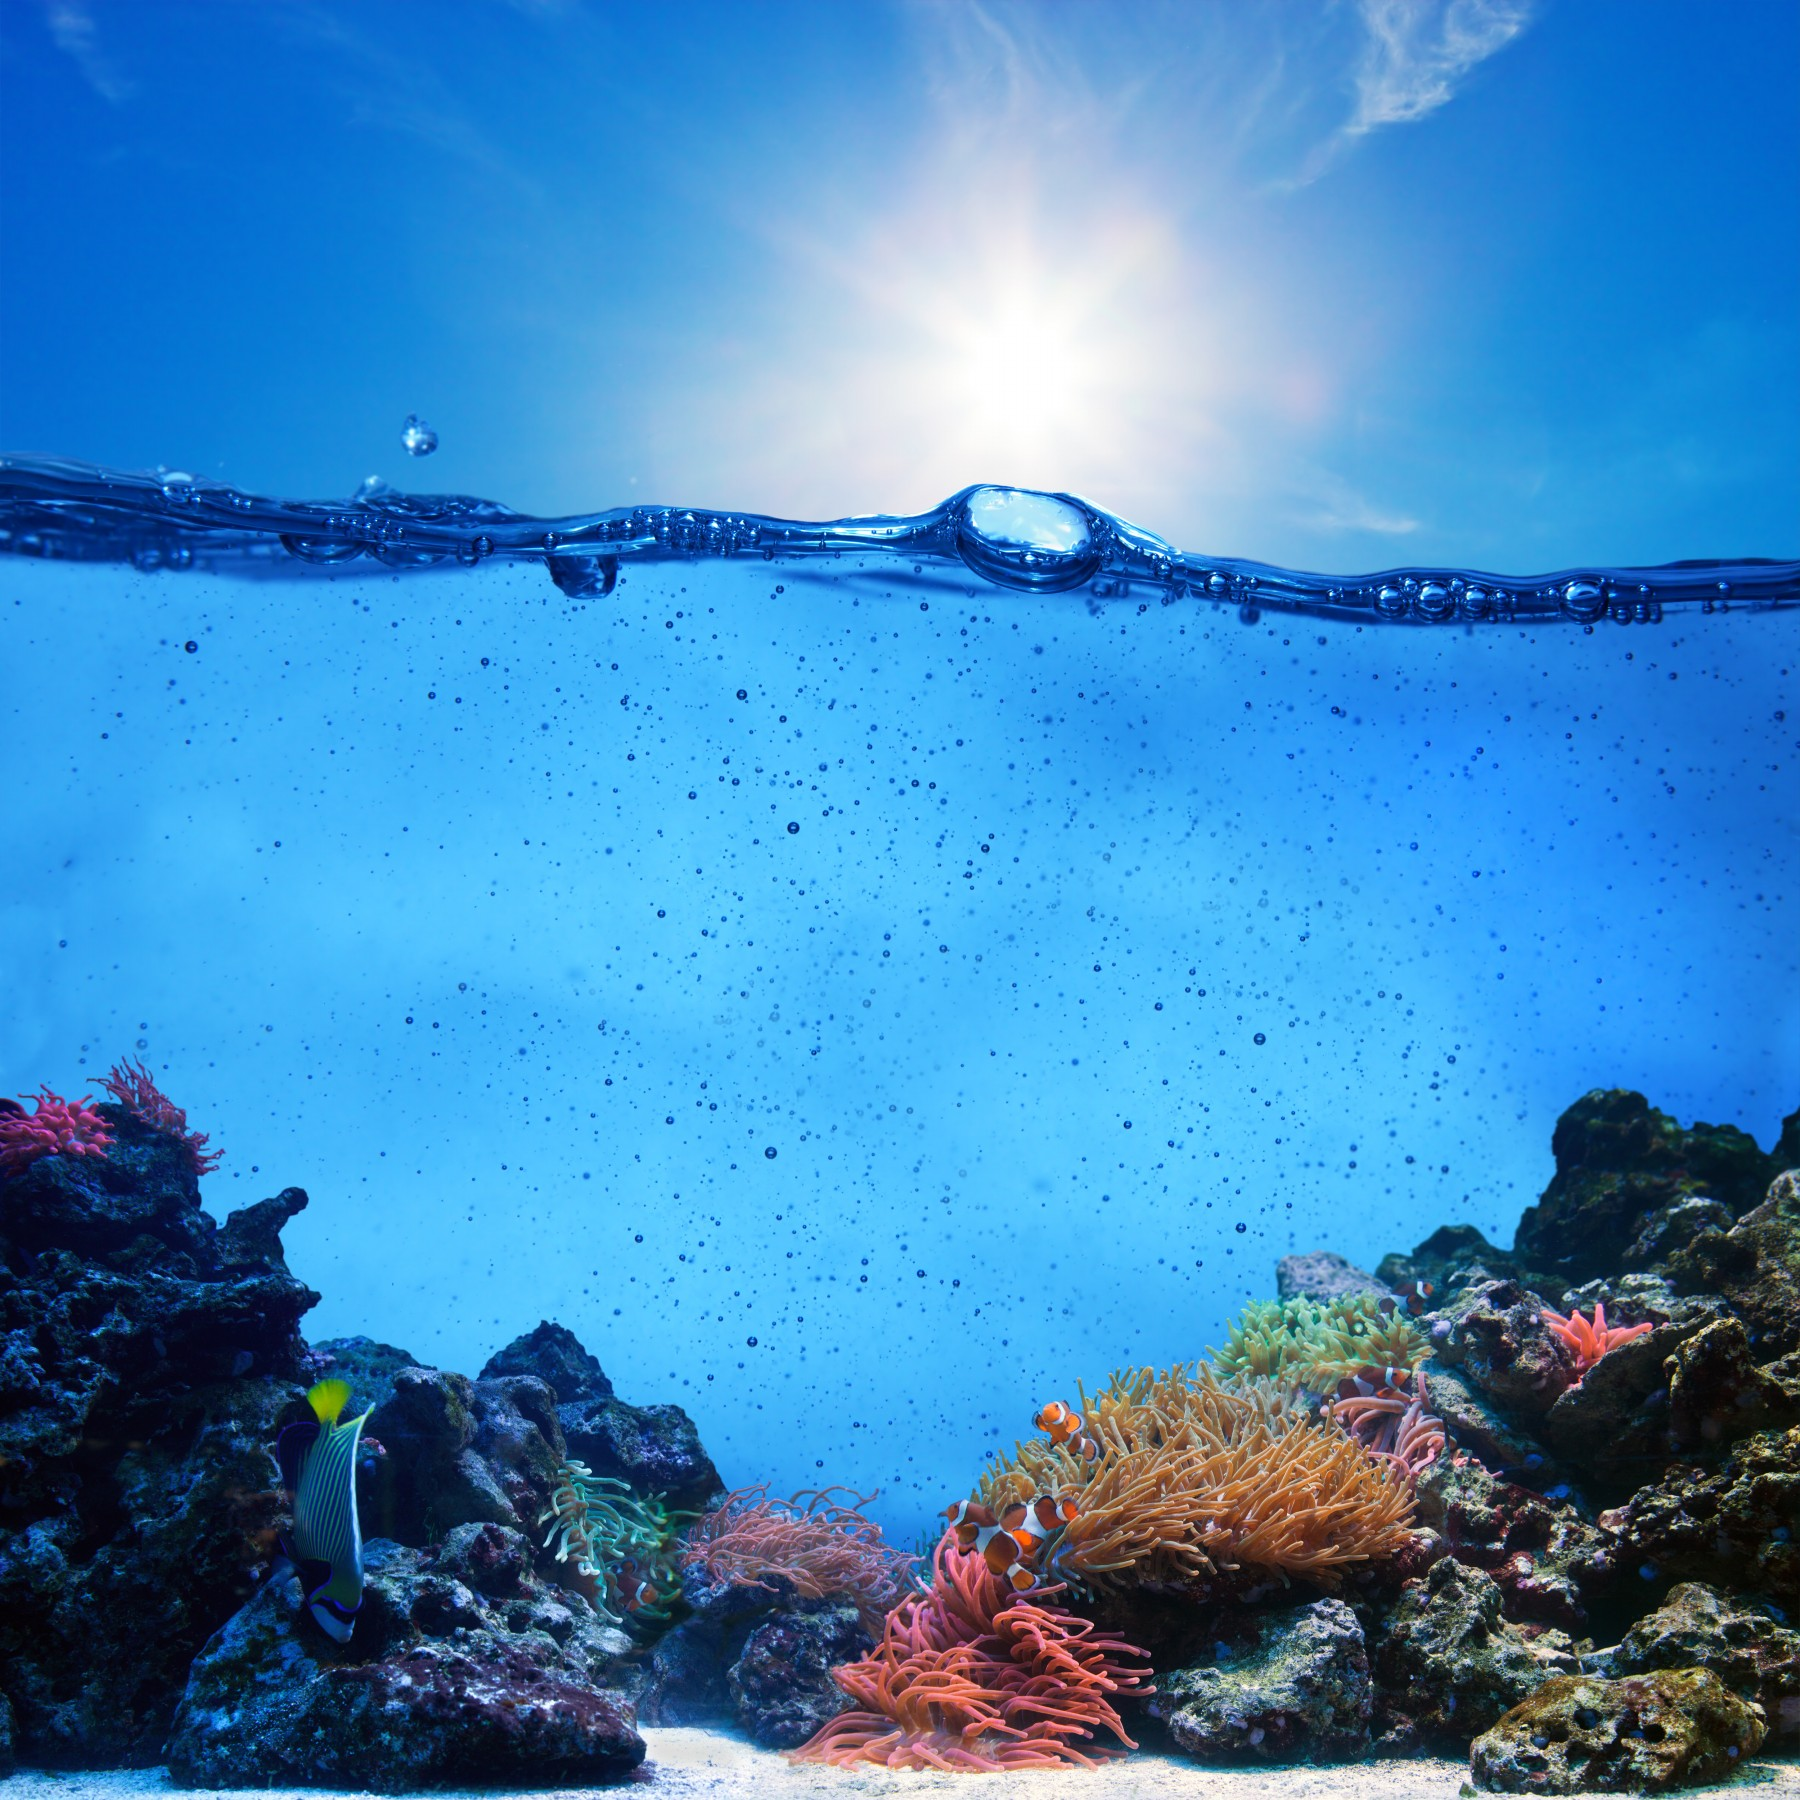 Deep Sea, Coral Reefs In Pictures